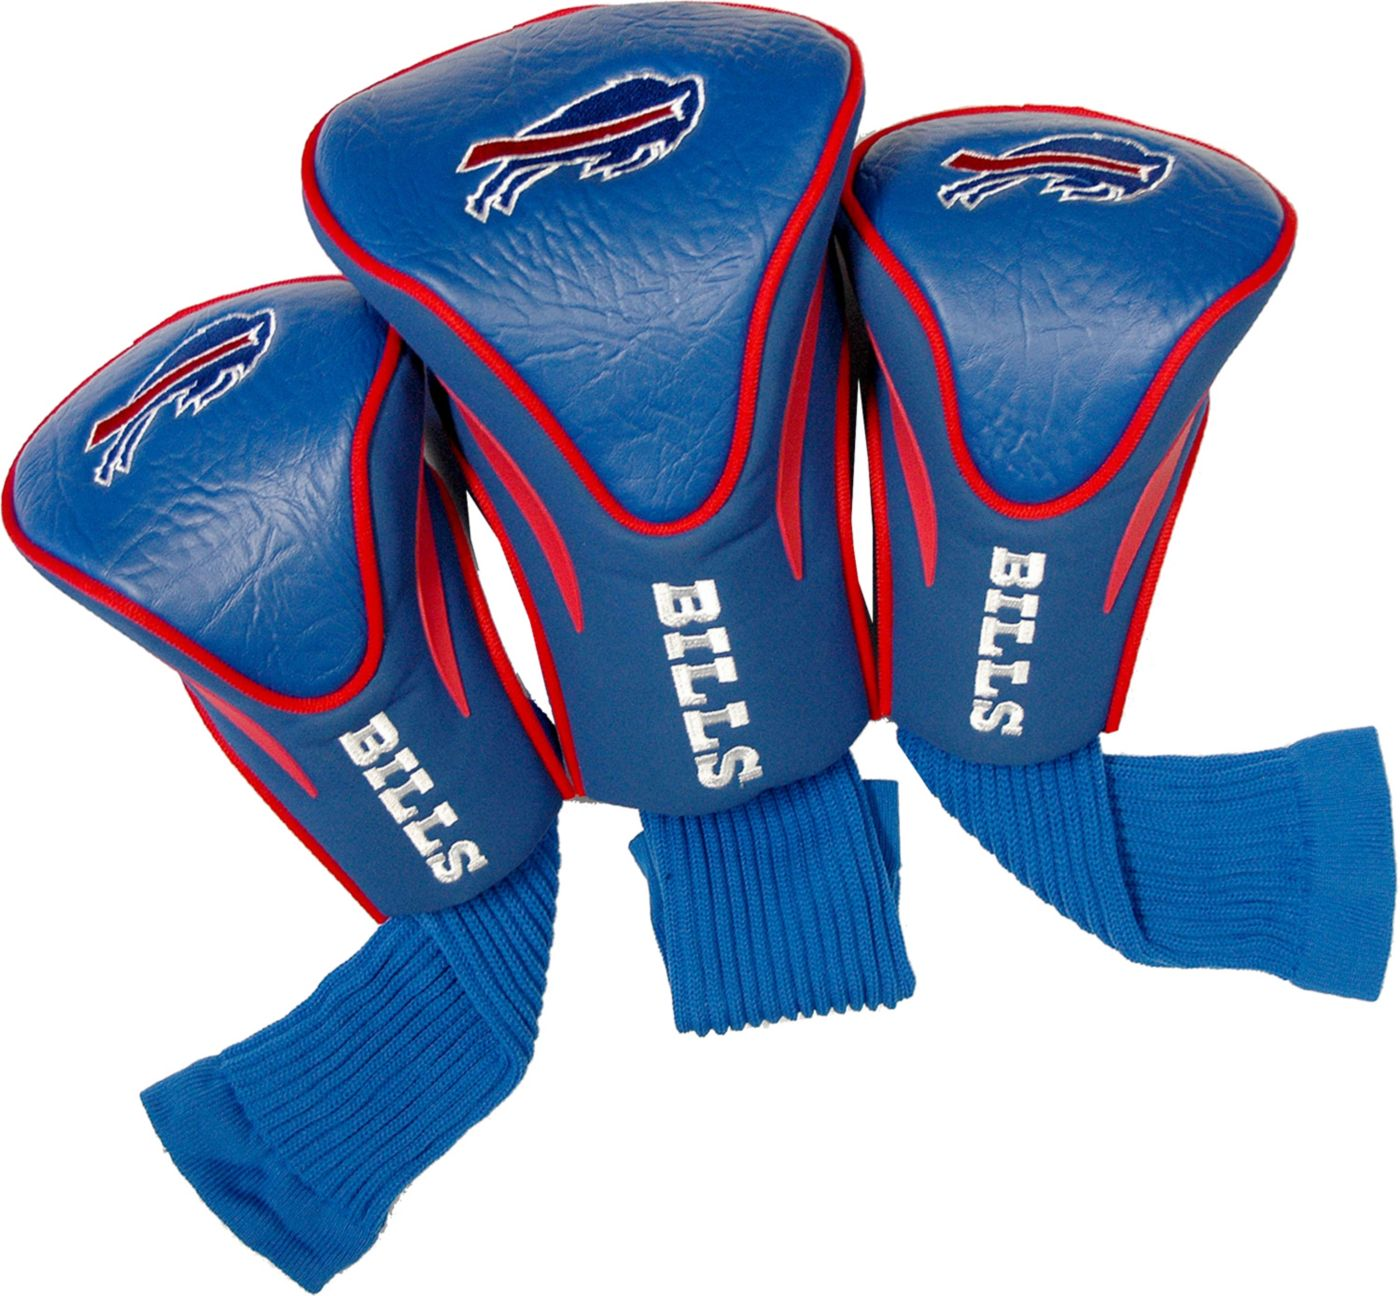 Team Golf Buffalo Bills Contour Sock Headcovers - 3 Pack